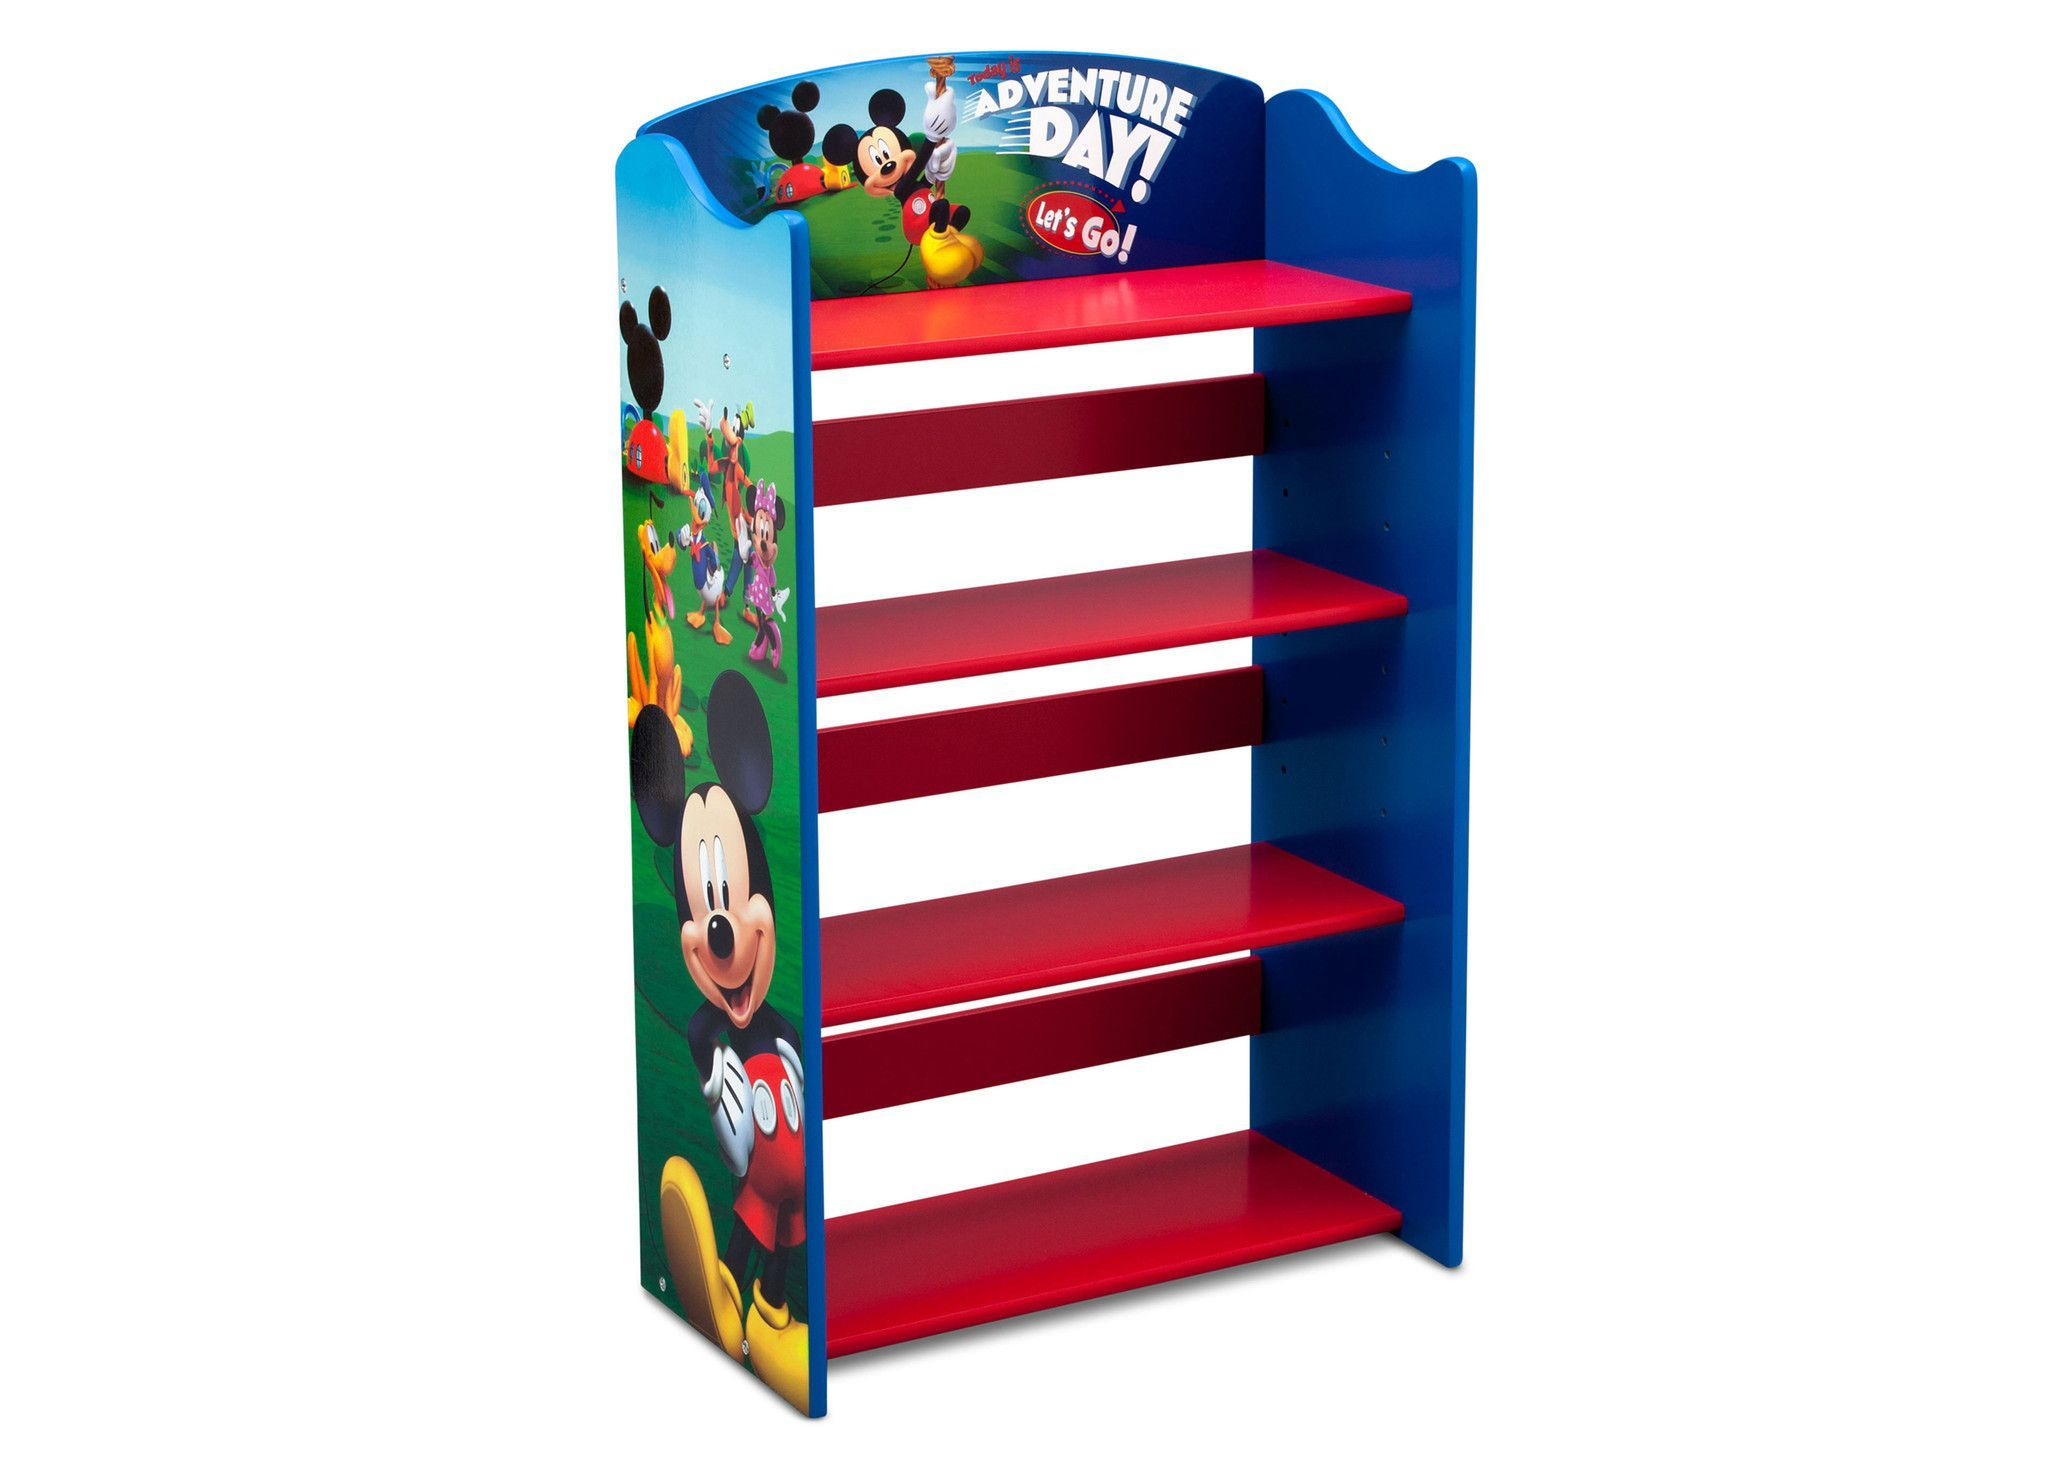 Bookshelf For Kids Room Mickey Mouse Bookshelf Gracie Kids Room Furniture